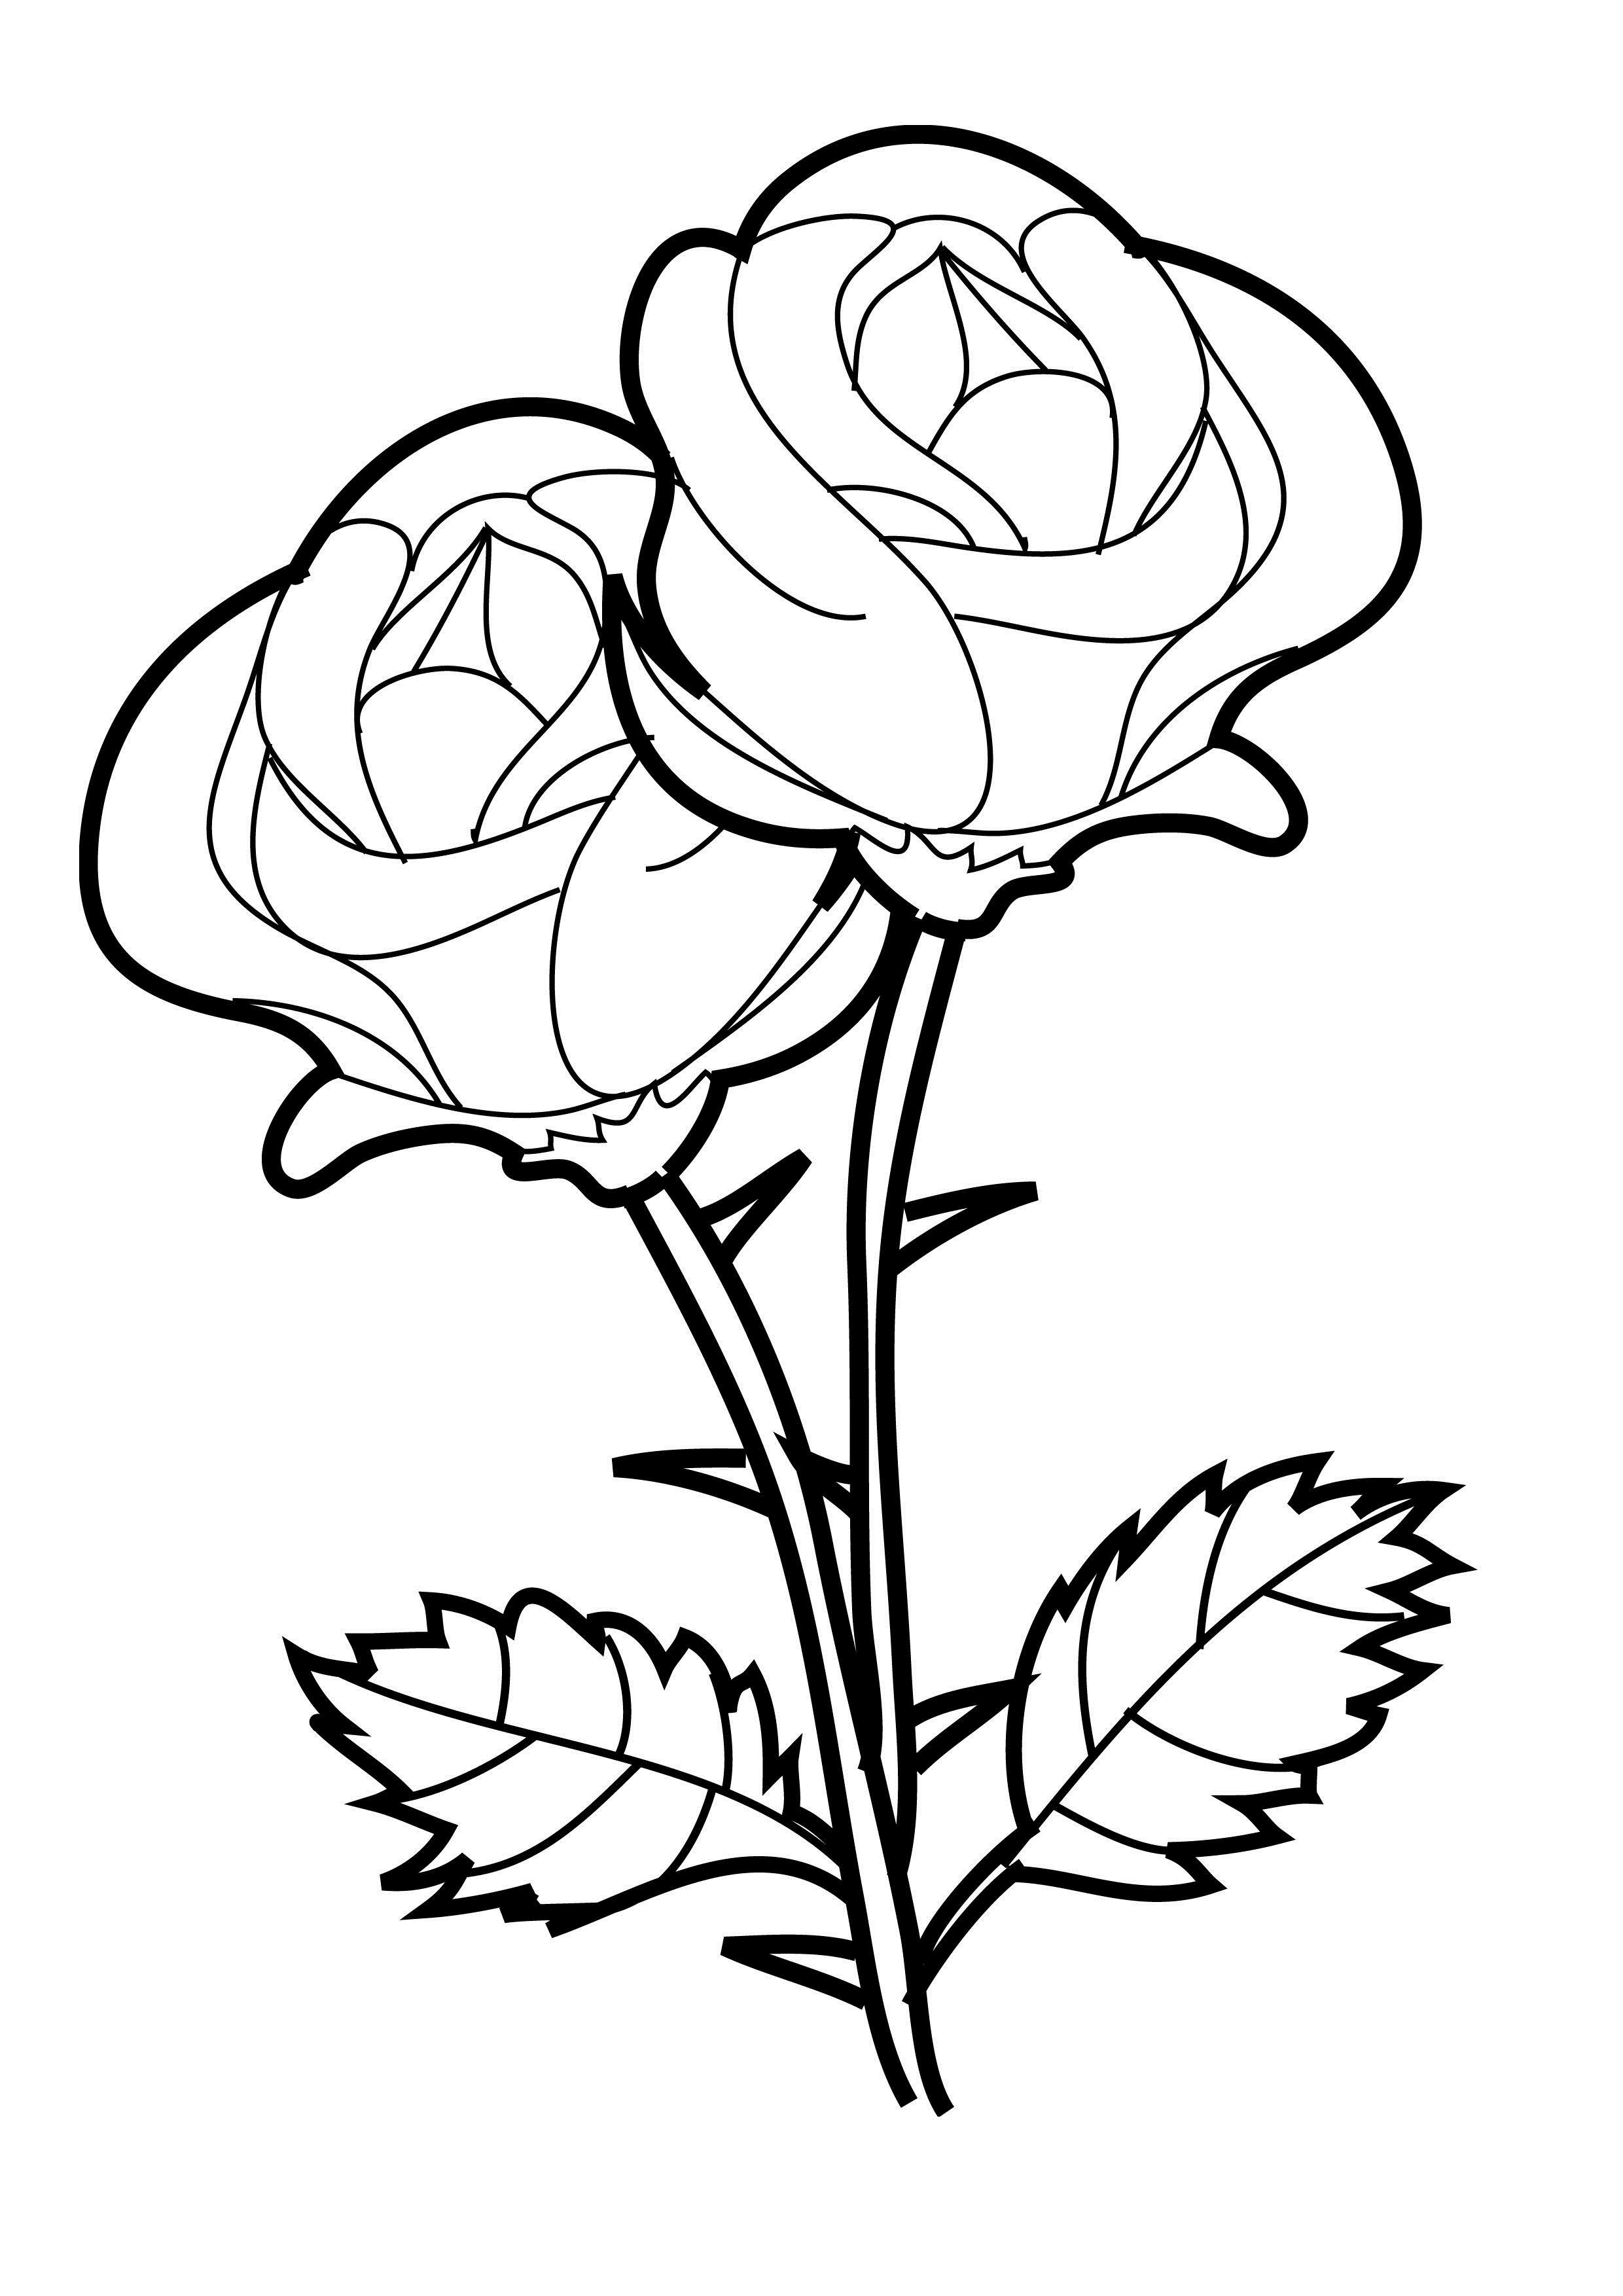 easy cute rose coloring pages rose coloring pages download cute roses coloring page or easy rose coloring pages cute